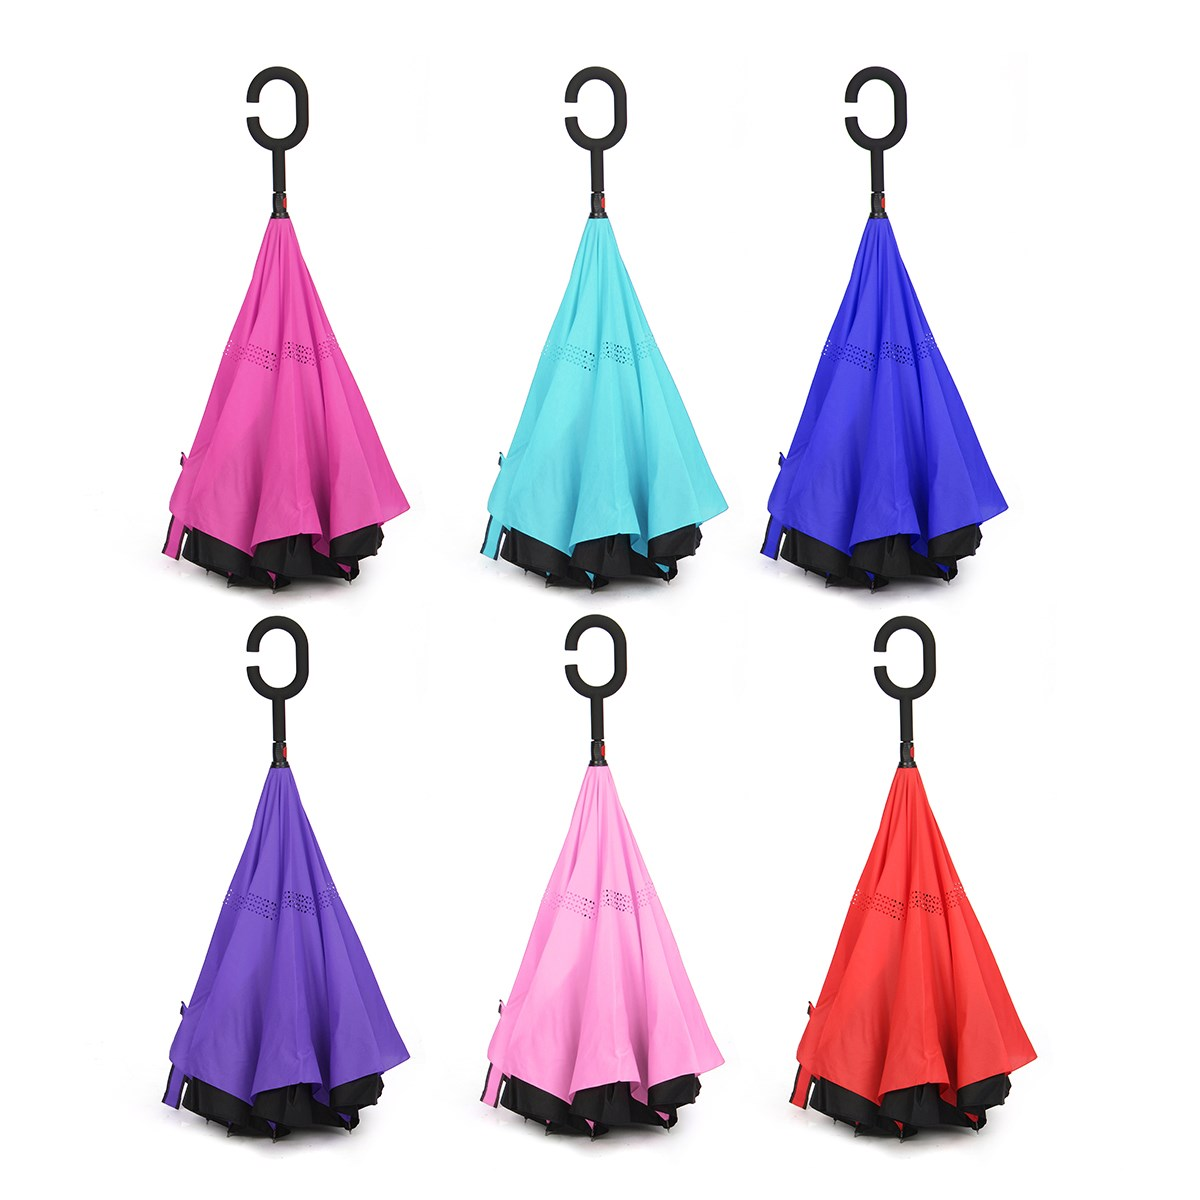 Invert color jpg online - Self Stand C Hook Windproof Double Layer Inverted Umbrella Hand Free Reverse Umbrella Six